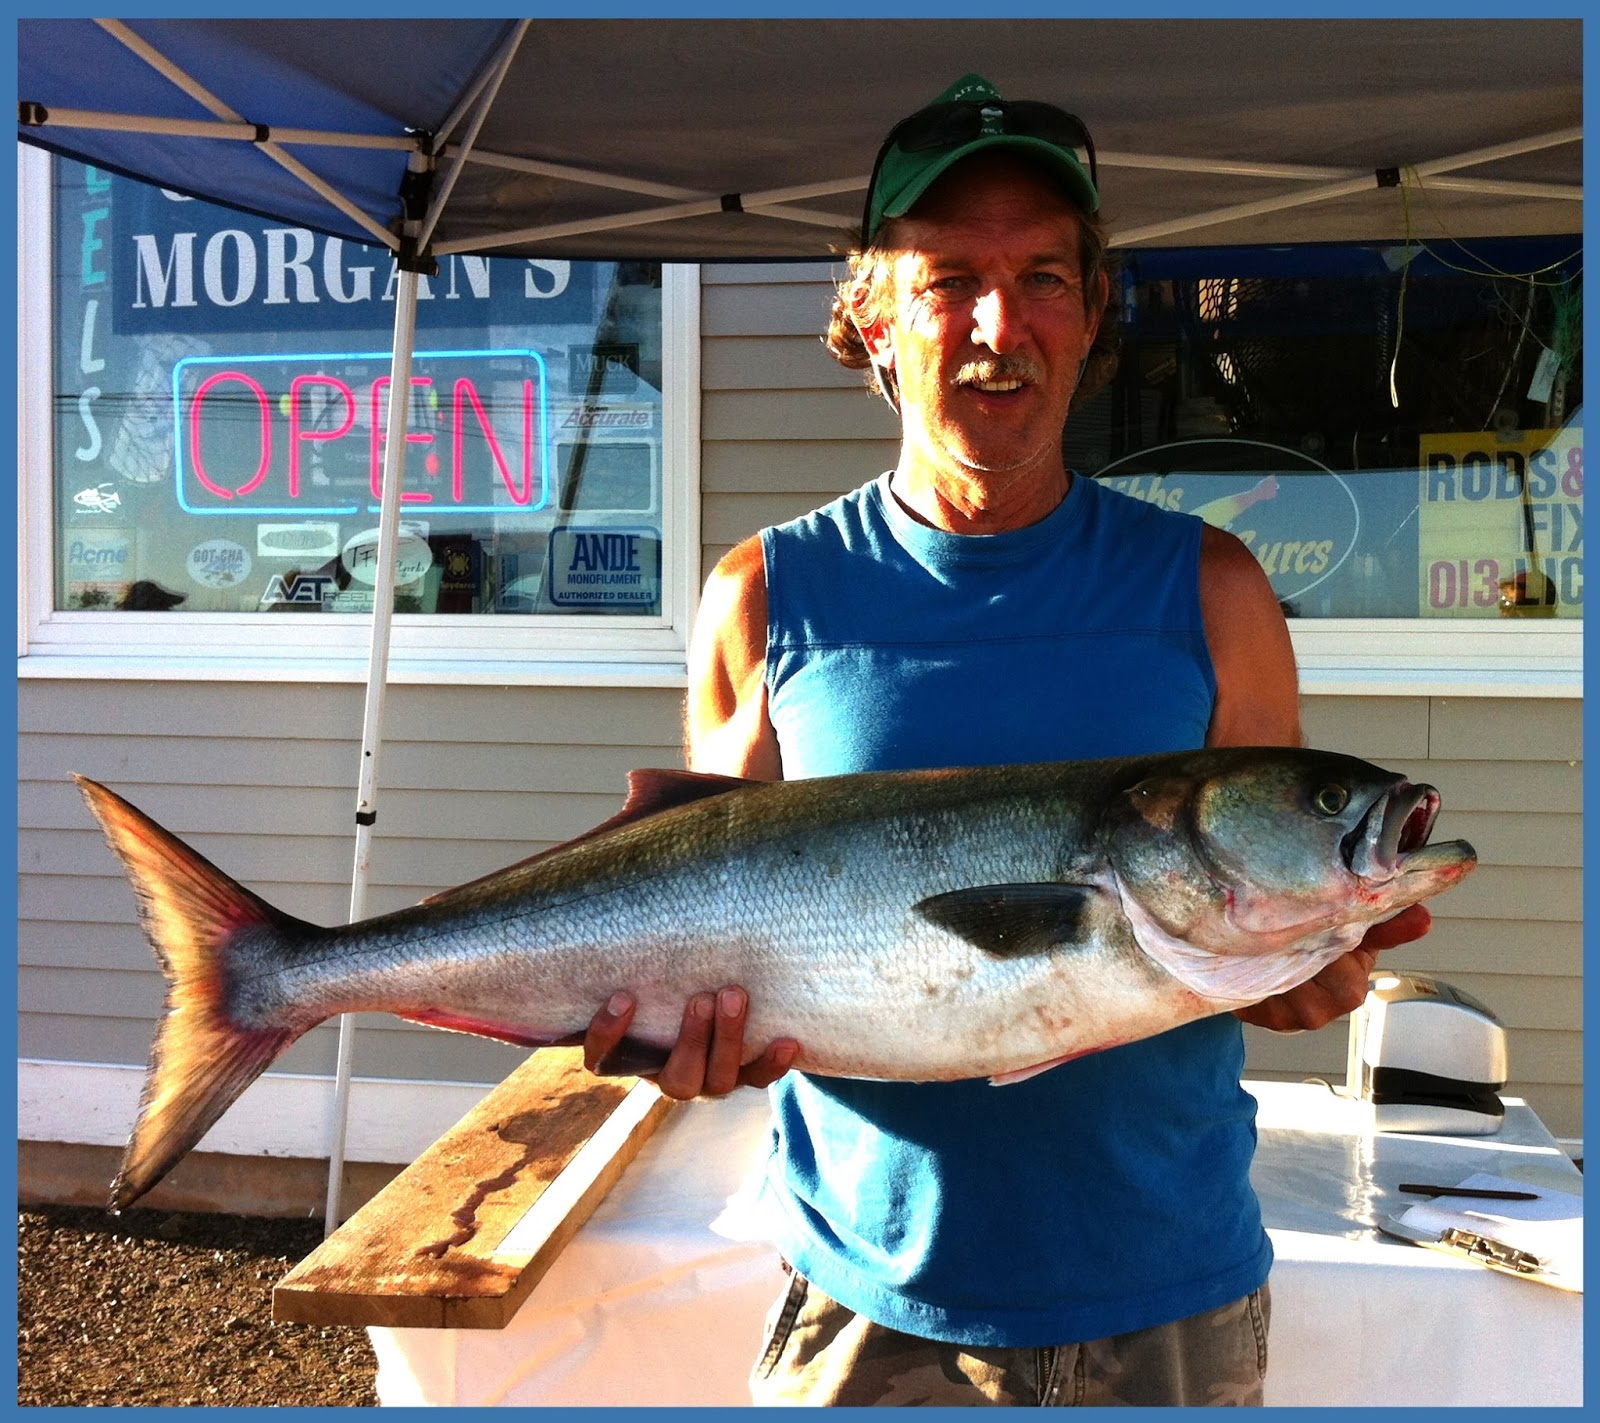 CT OUT-FISHES NY IN BLUEFISH CONTEST: NY IS BIG MONEY WINNER